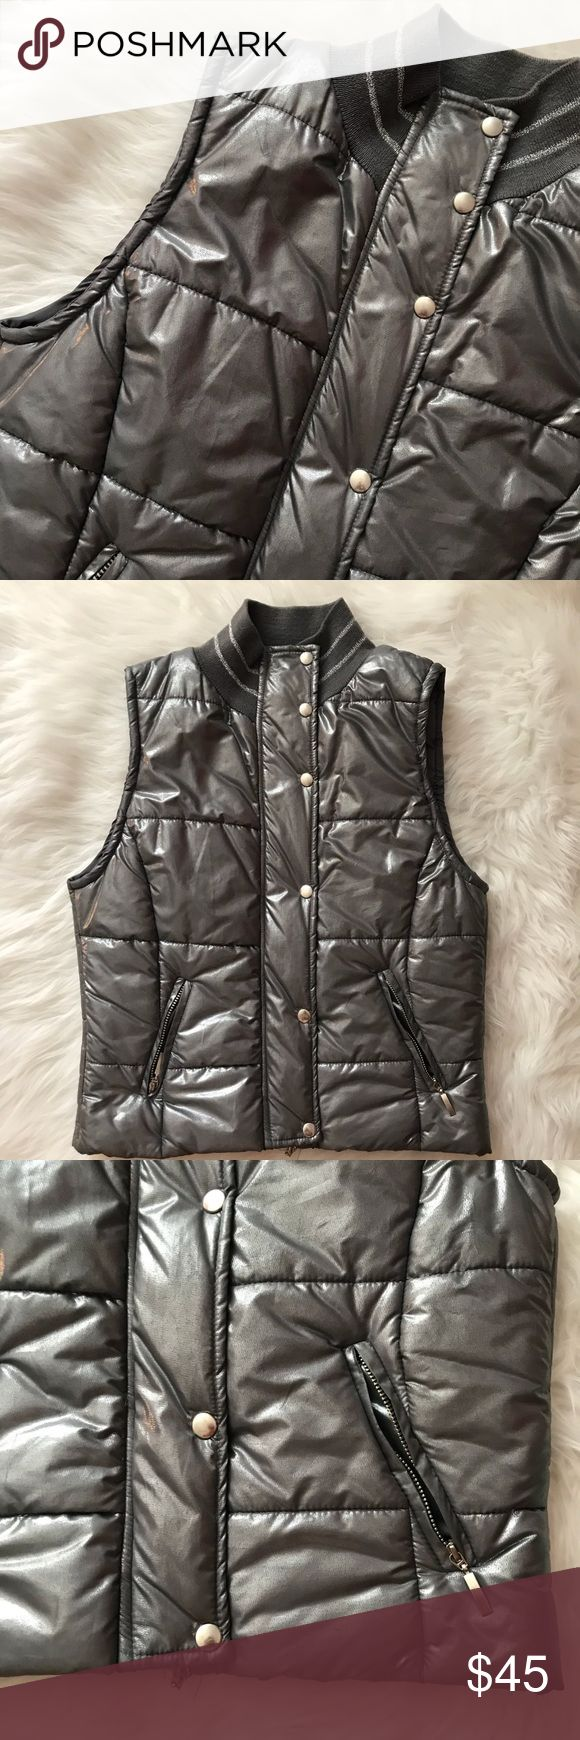 Motive Italian Metallic Silver Vest sz Small Trendy silver metallic puff vest from Italian Brand Motivi. Size Small. Excellent condition. Motivi Jackets & Coats Vests